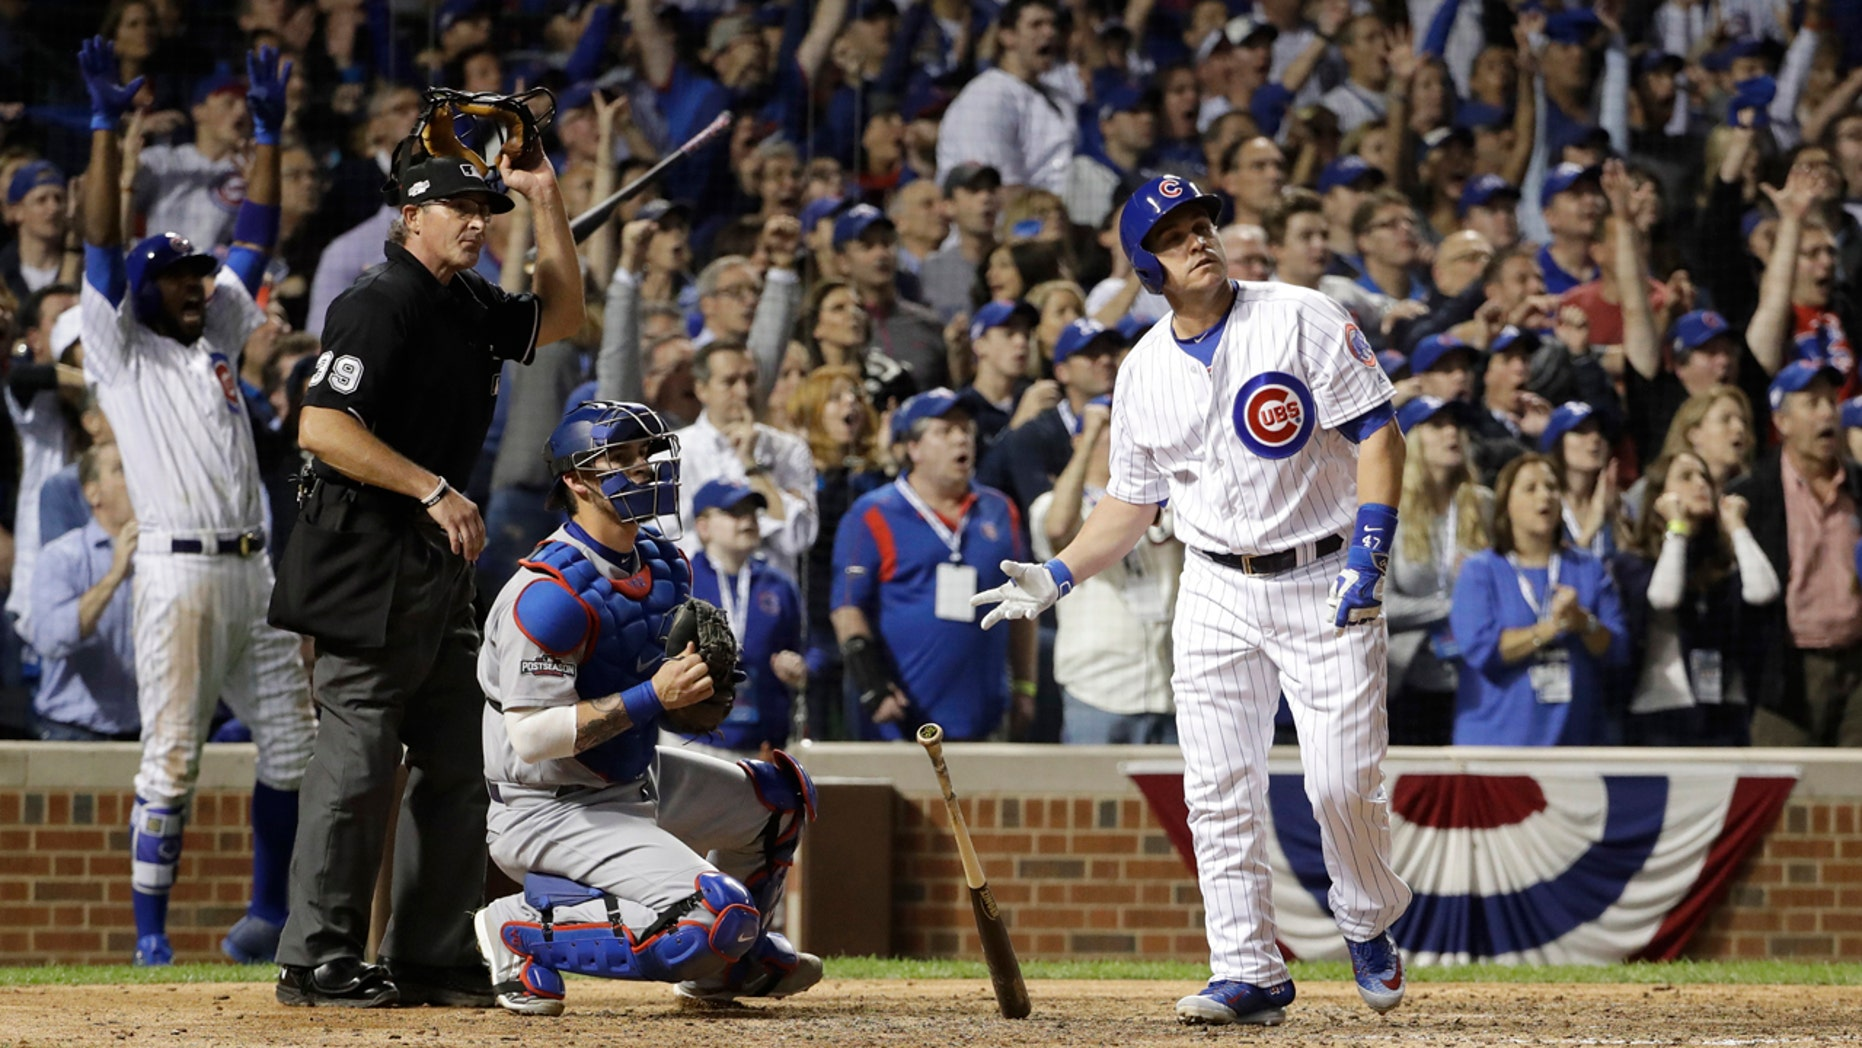 Oct. 15, 2016: Chicago Cubs catcher Miguel Montero (47) watches the ball as he hits a grand slam during the eighth inning of Game 1 of the National League baseball championship series against the Los Angeles Dodgers in Chicago